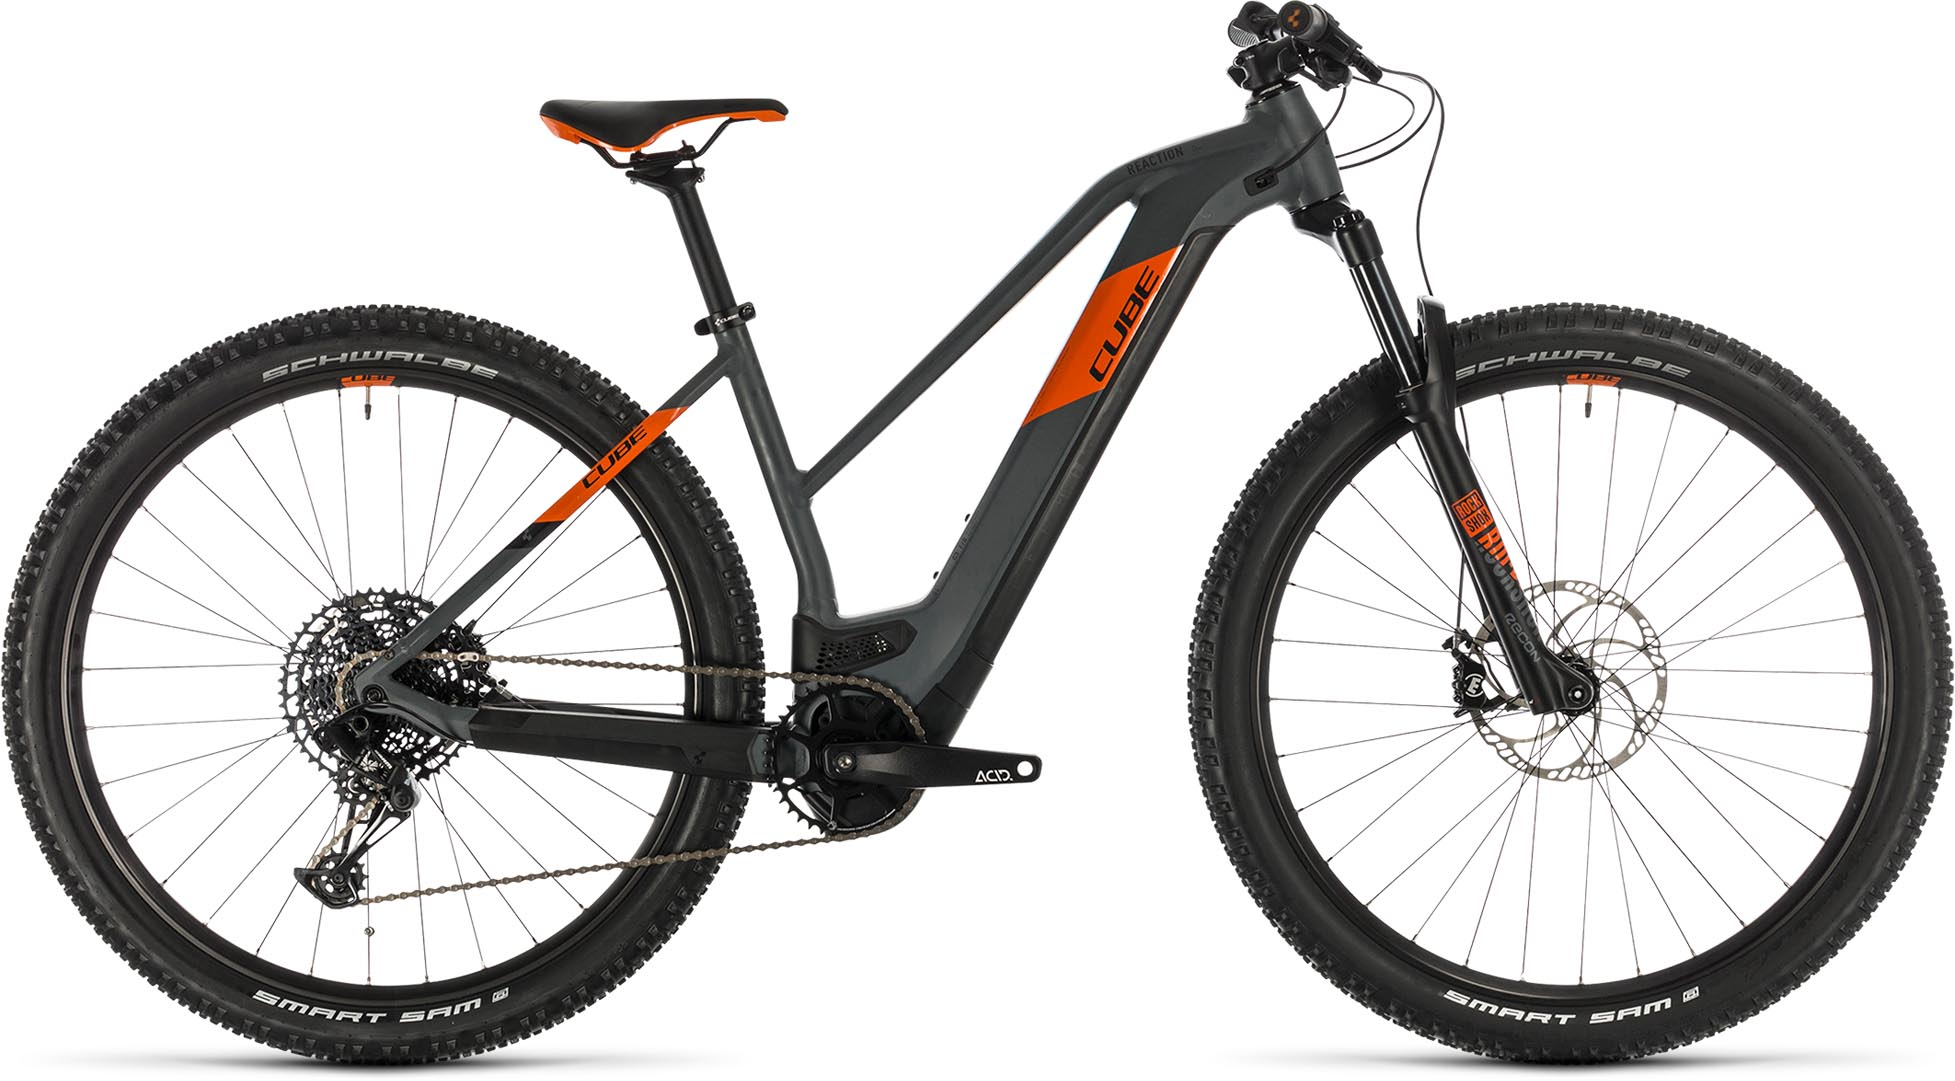 cube reaction hybrid sl 625 29 grey n orange 2020 damen e bike hardtail mountainbike e bike. Black Bedroom Furniture Sets. Home Design Ideas